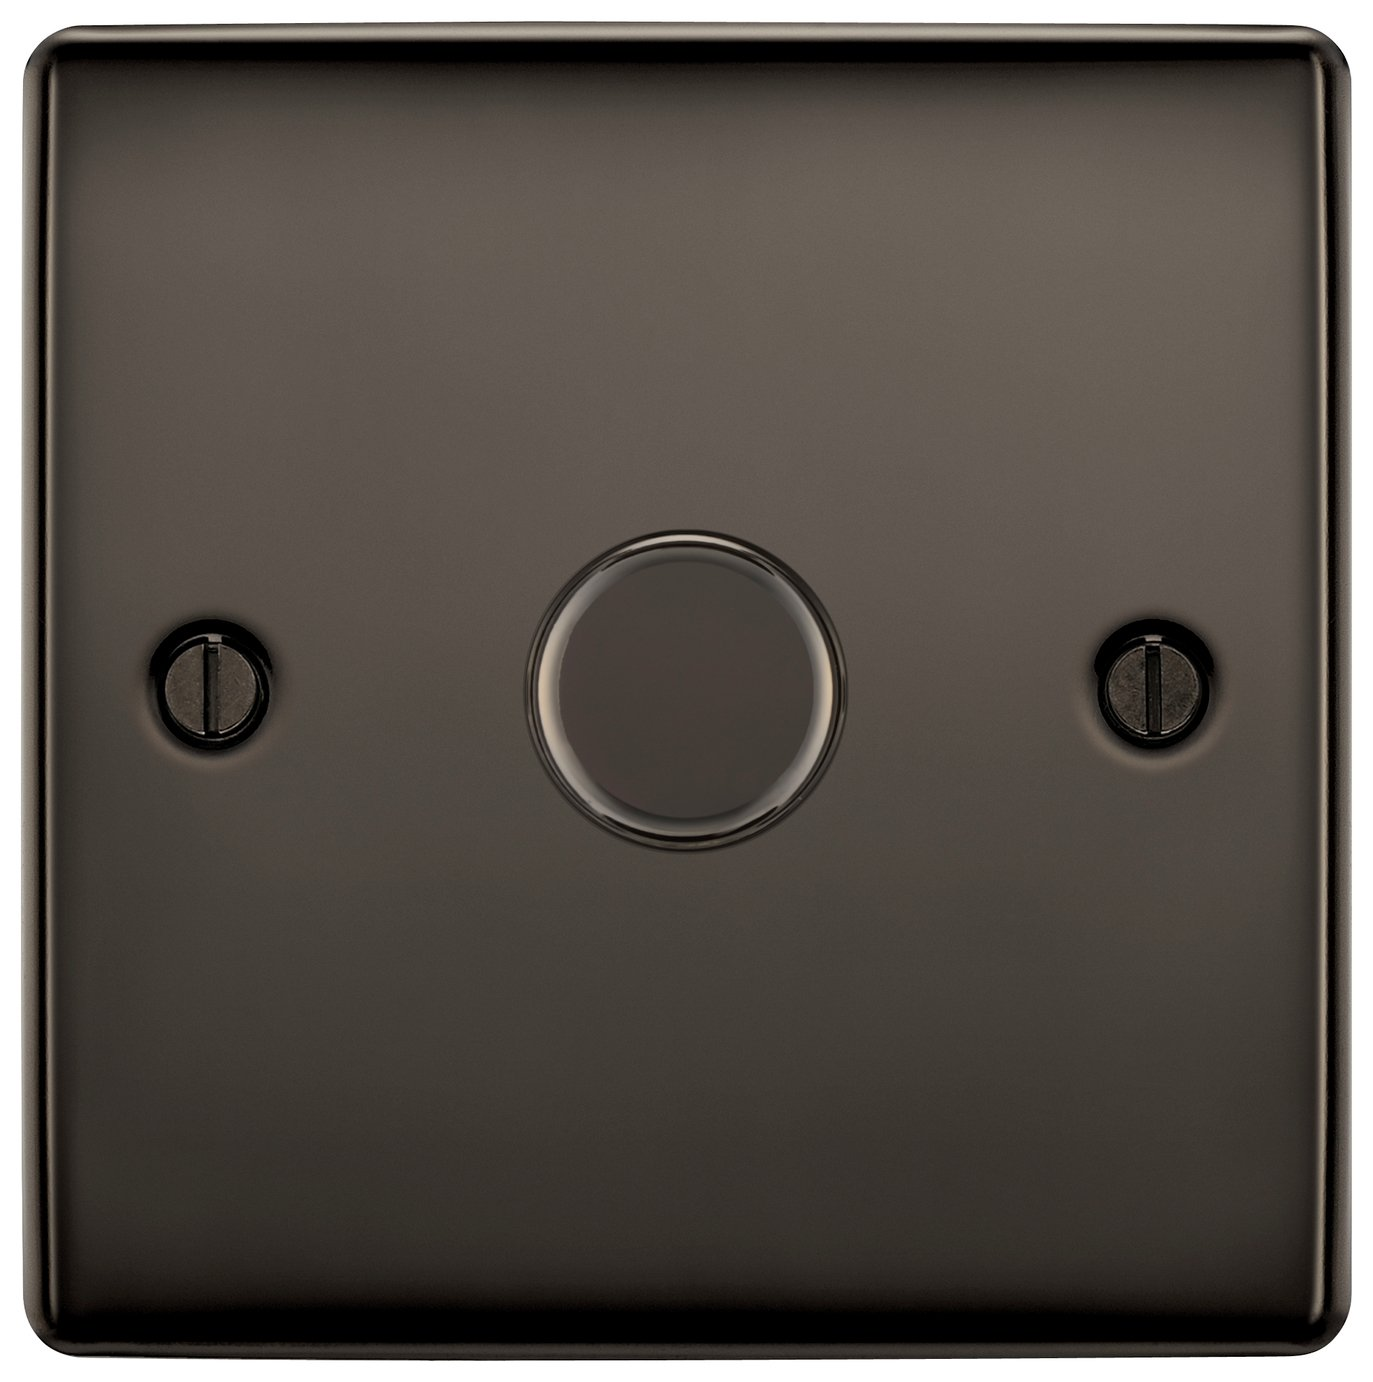 BG Single 2 Way Dimmer Switch review